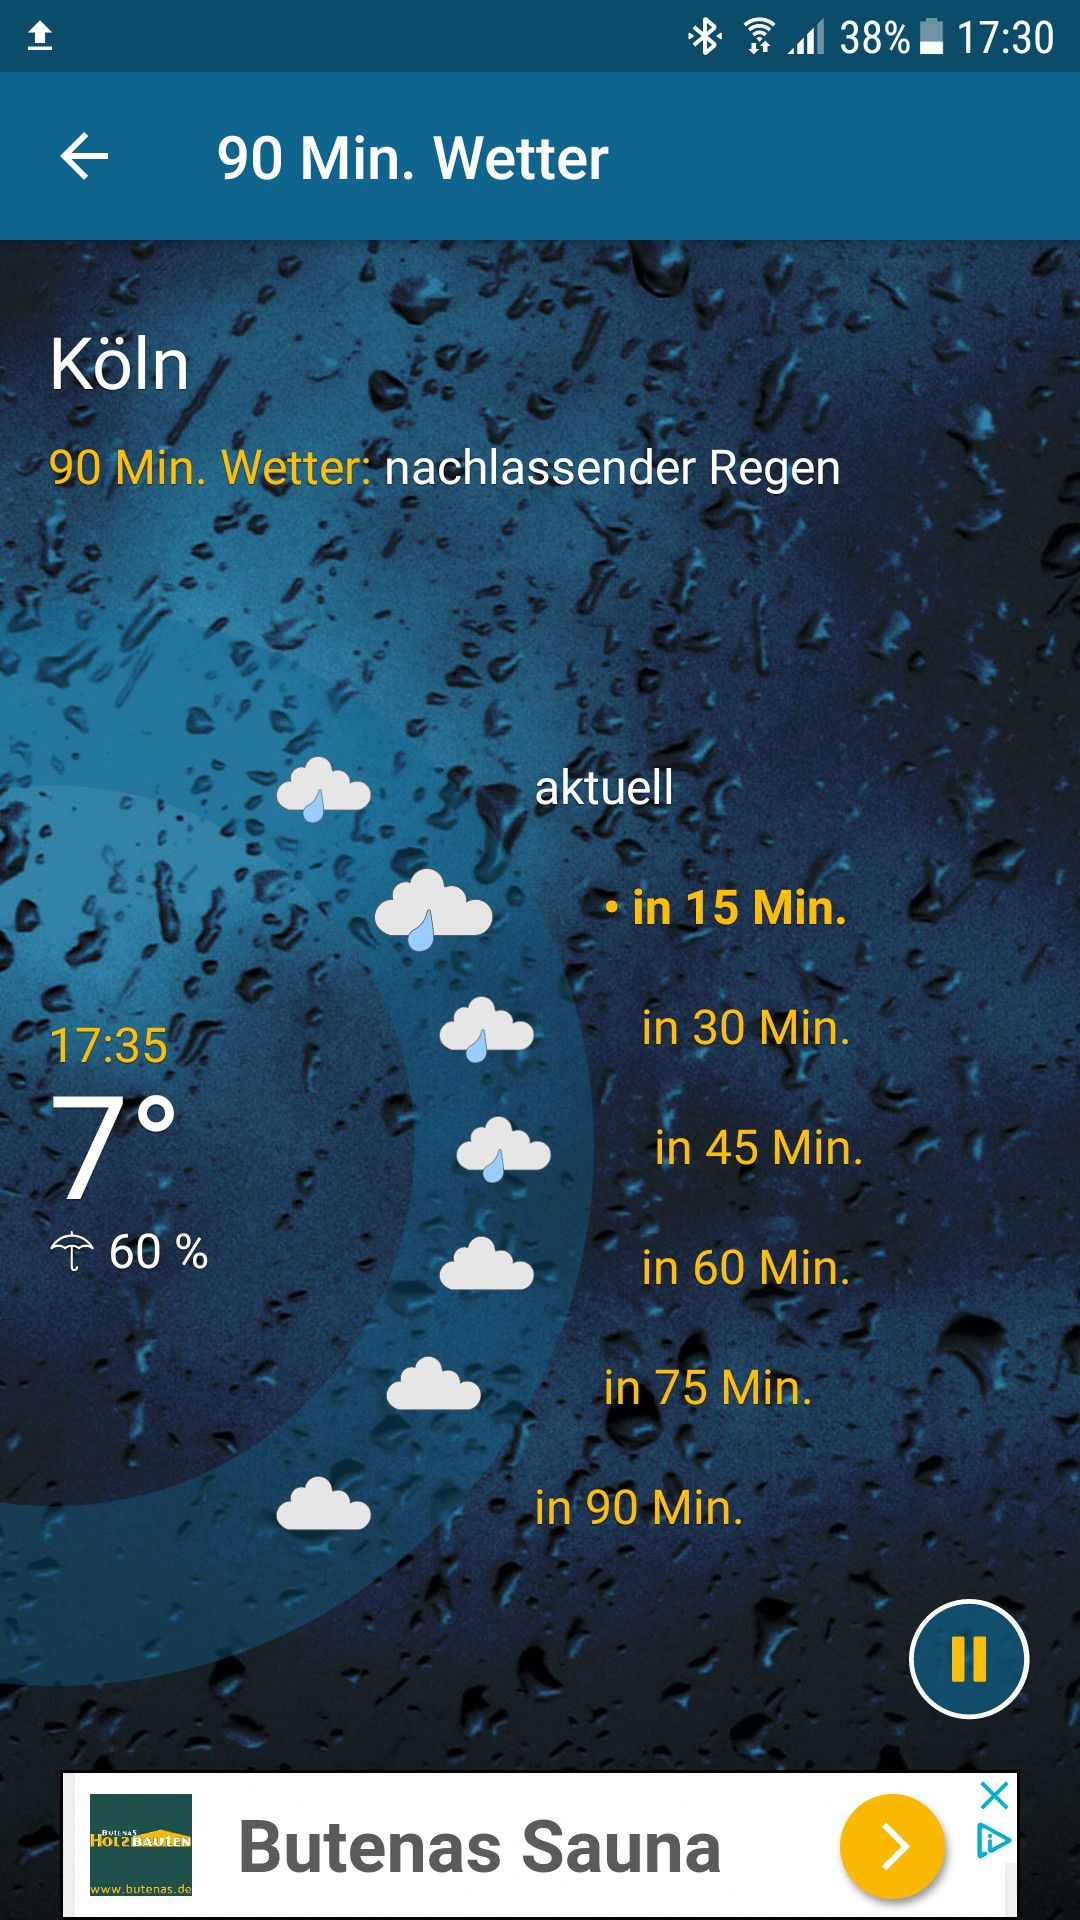 Wetter Apps für Android, iPhone, iPad, Windows …